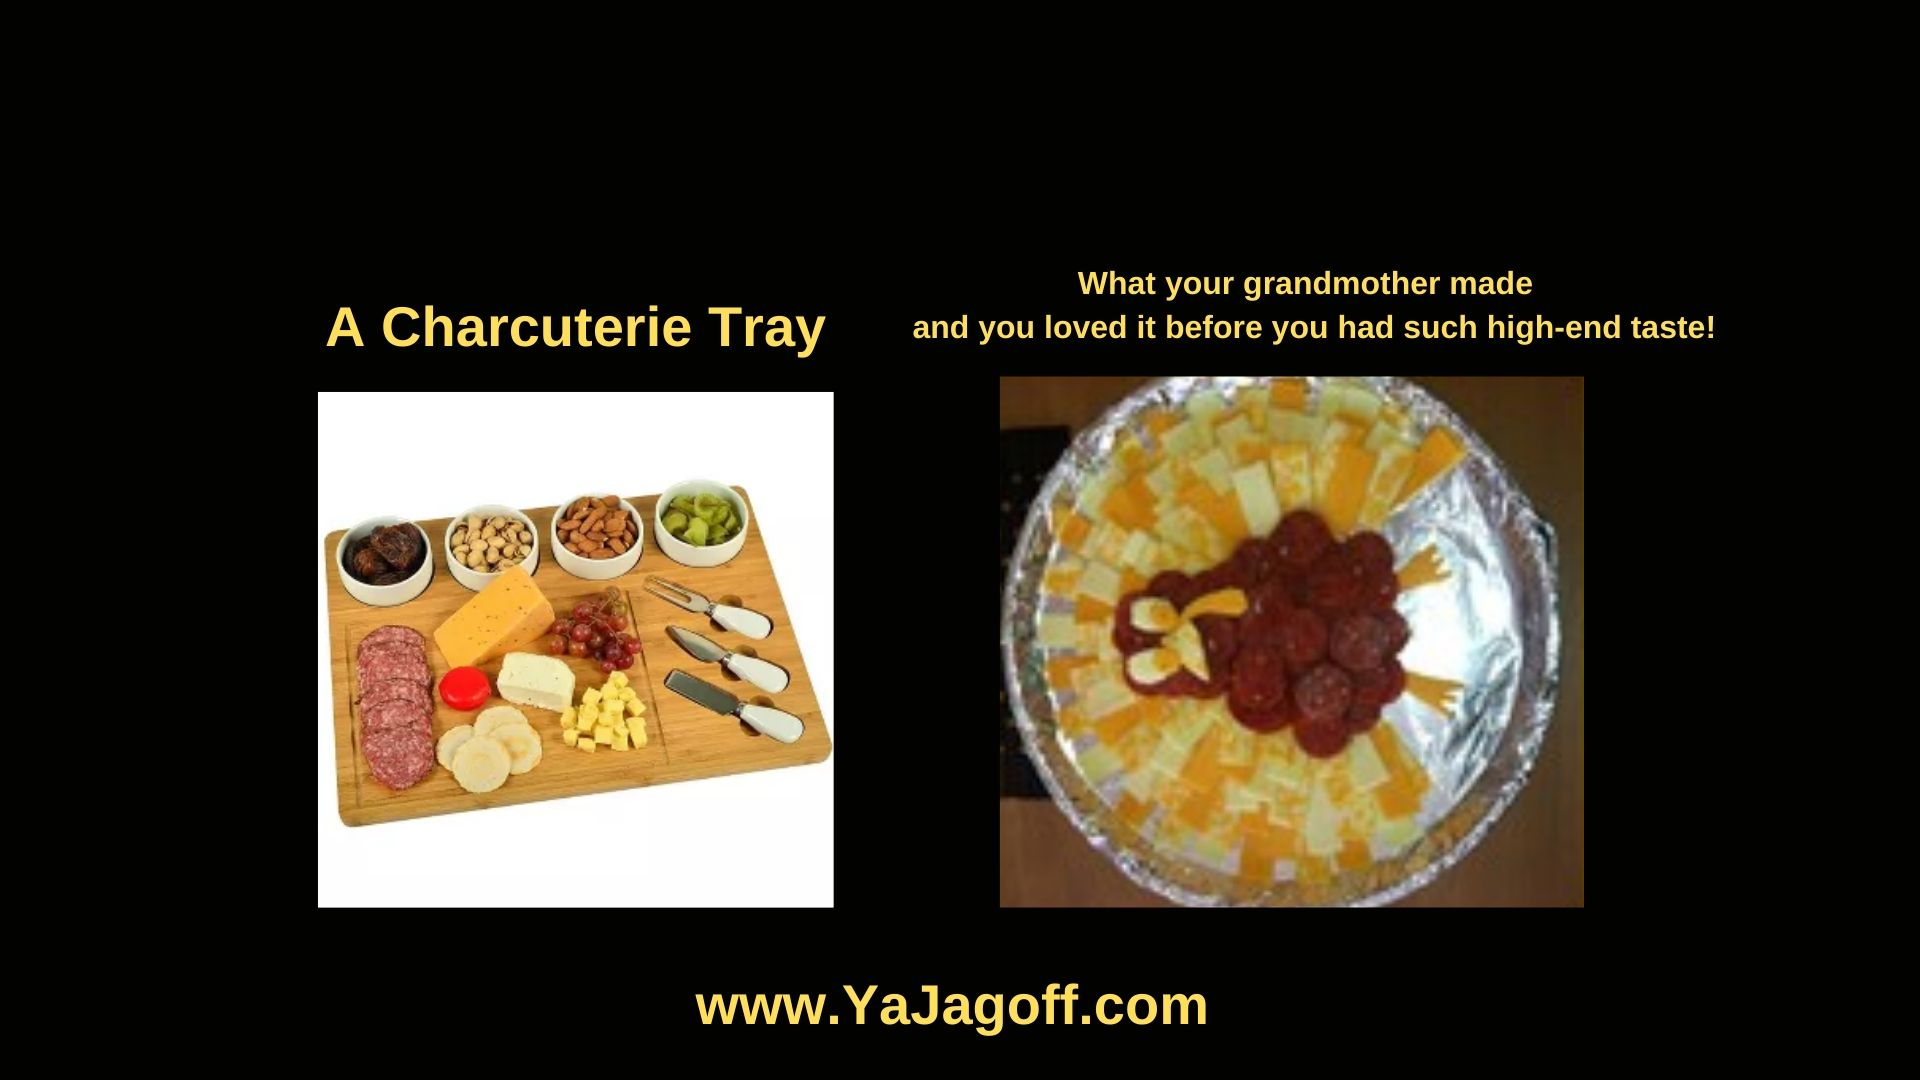 YaJagoff.com about Charcuterie